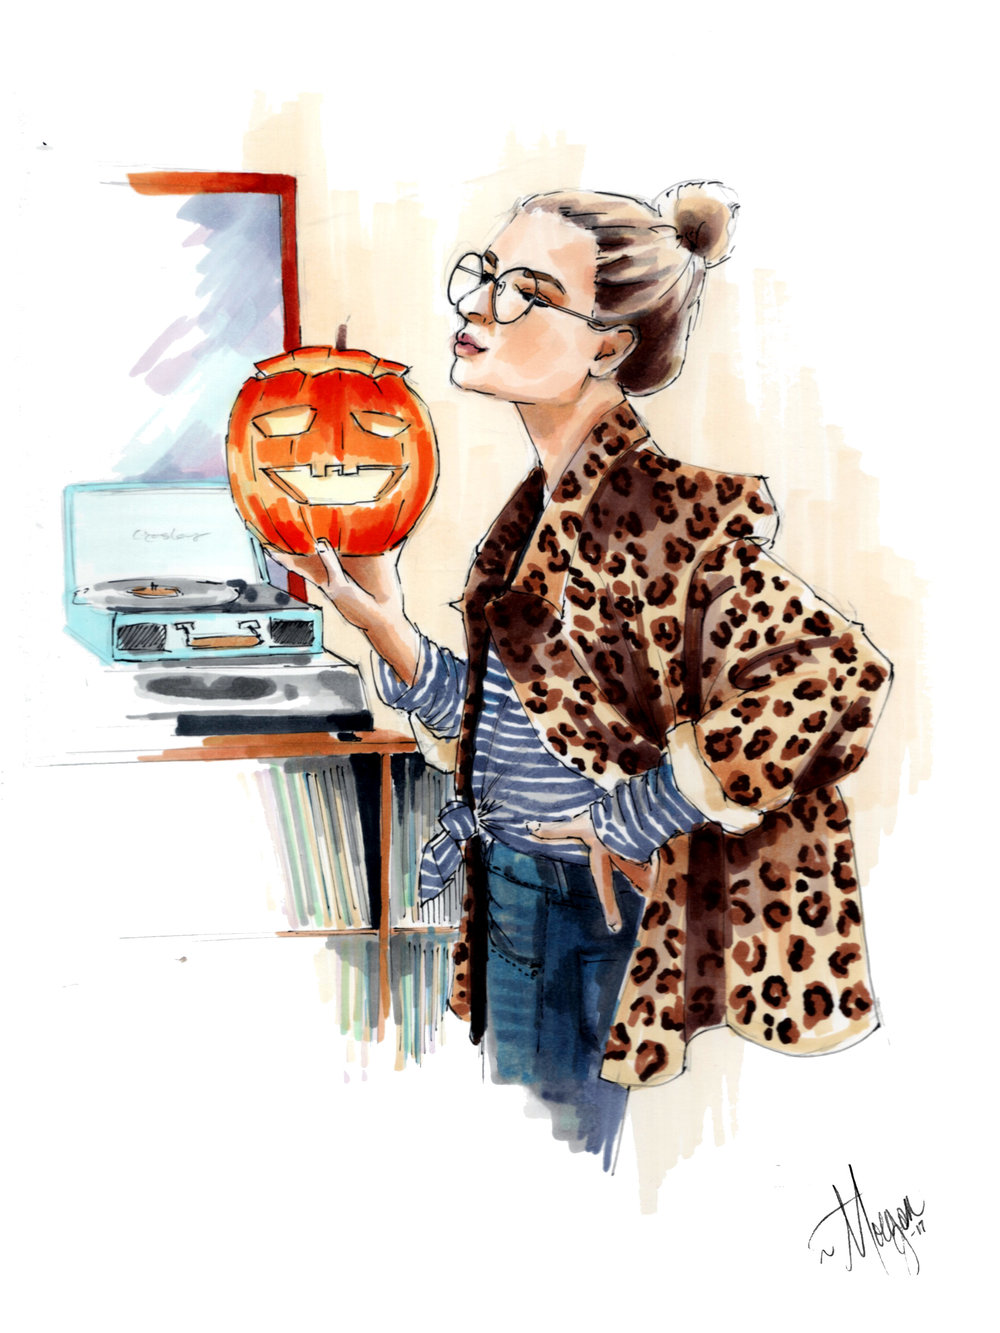 halloween-illustration-morgan-swank-studio.jpg